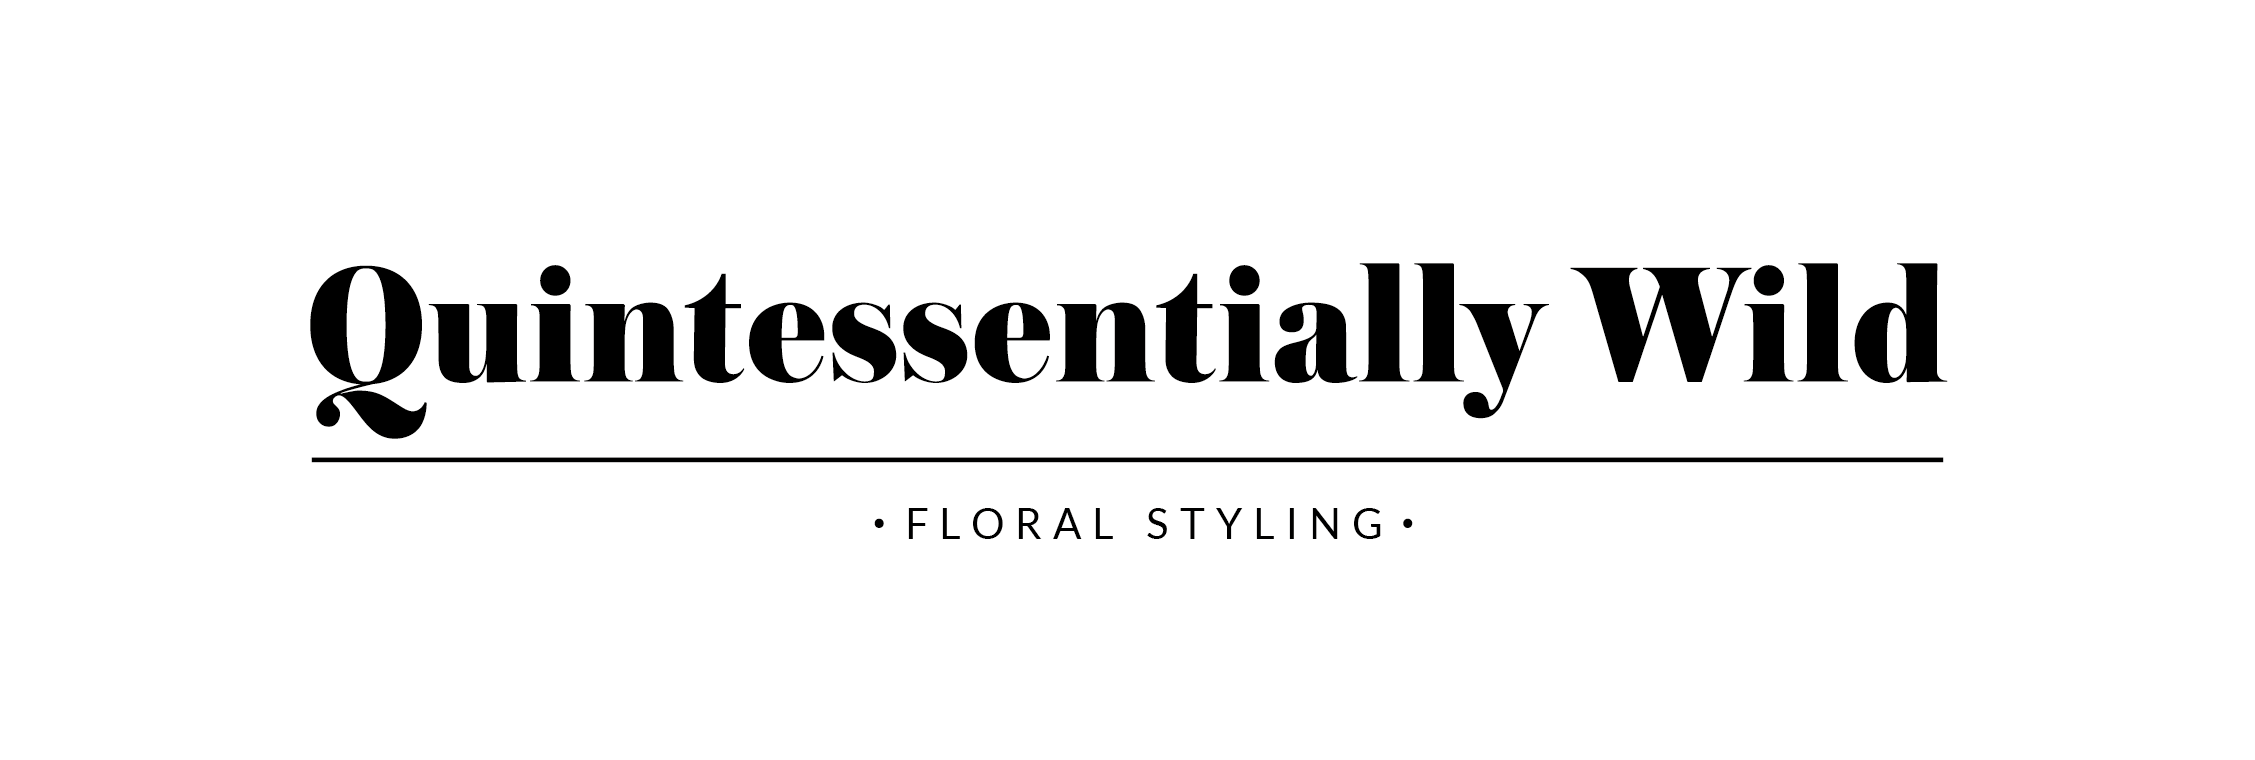 full logo floral stylist version.png